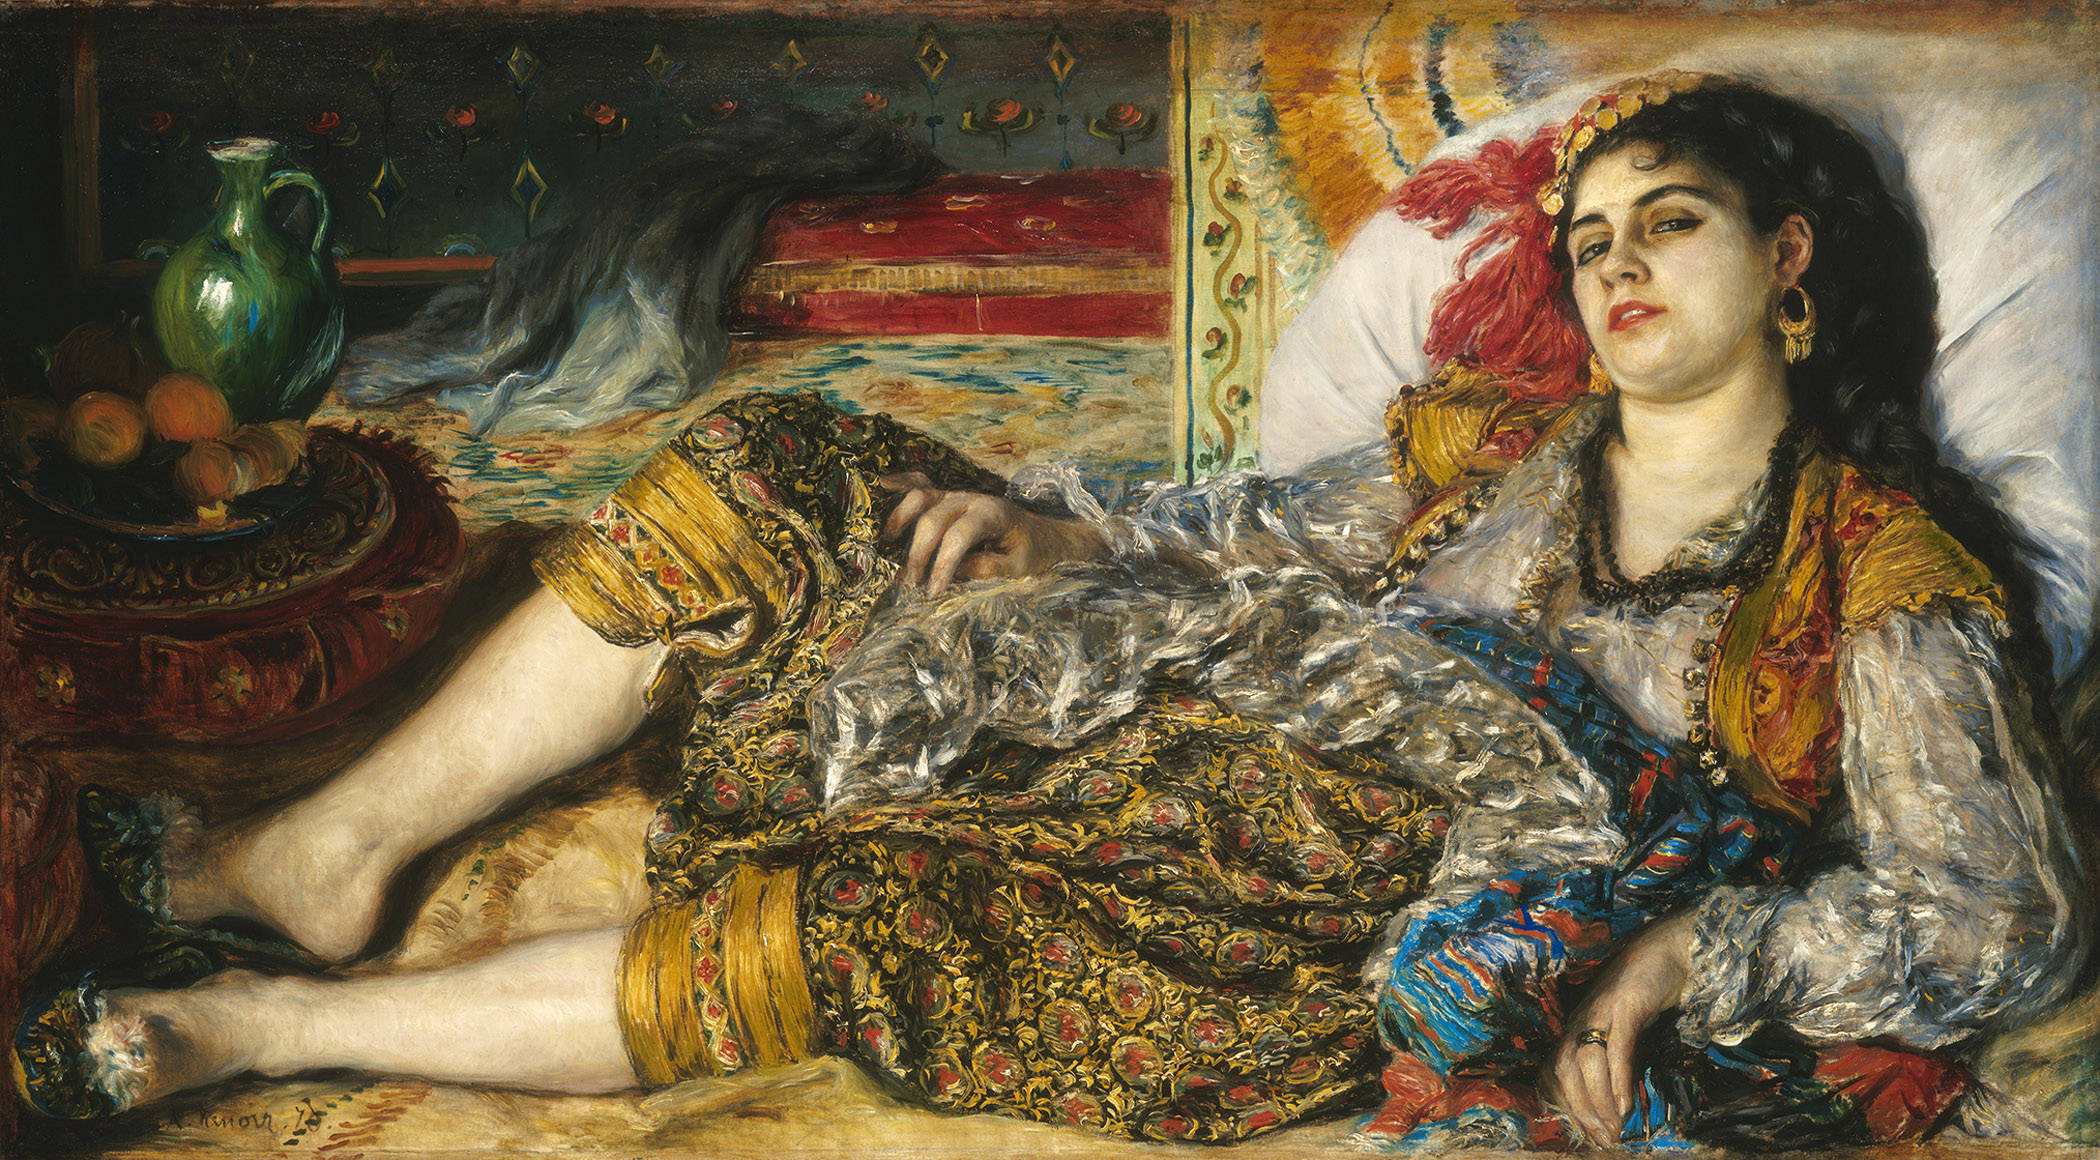 the themes of male power and the role of women in society in the painting odalisque by pierre august Women have departed from their traditional role of reproducers, mothers and wives only from a non-entity, they have been able to establish an identity of their own in the modern society modern women have proved that they are second to none, whether it is home, or outside home at their workplace.